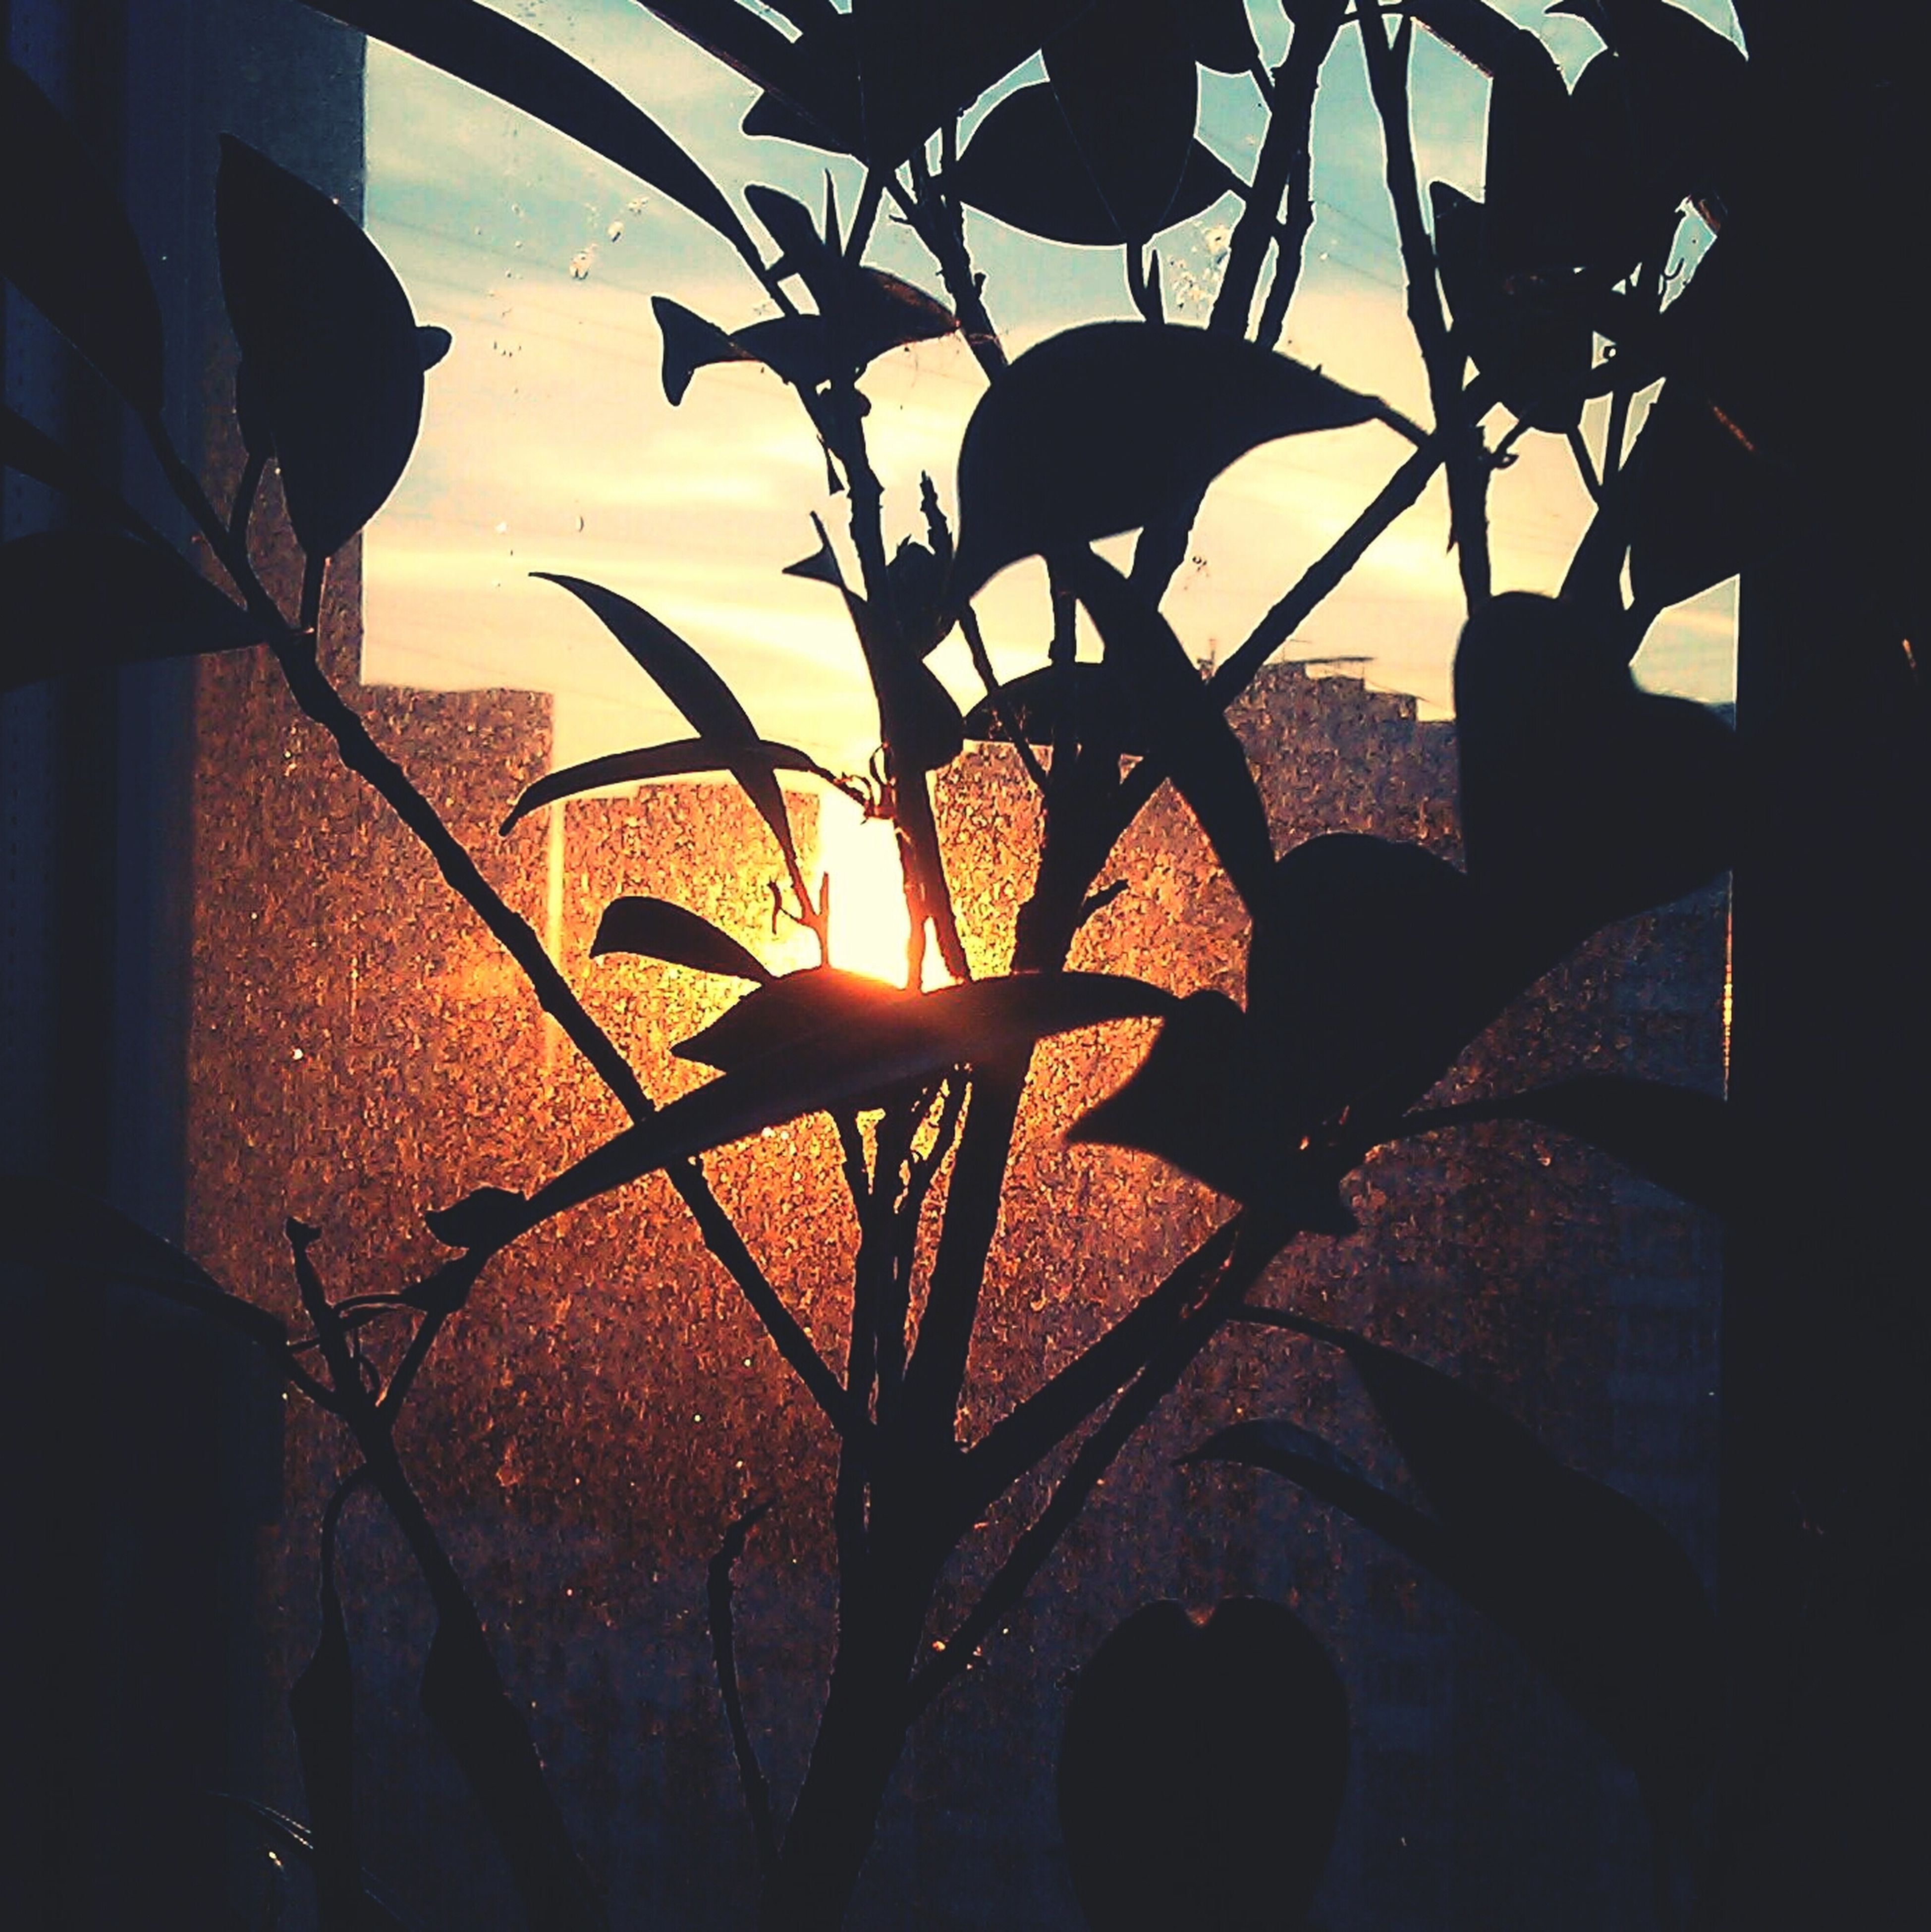 architecture, built structure, building exterior, sunset, sky, silhouette, low angle view, indoors, house, window, sunlight, plant, growth, branch, no people, building, residential structure, dusk, potted plant, wall - building feature